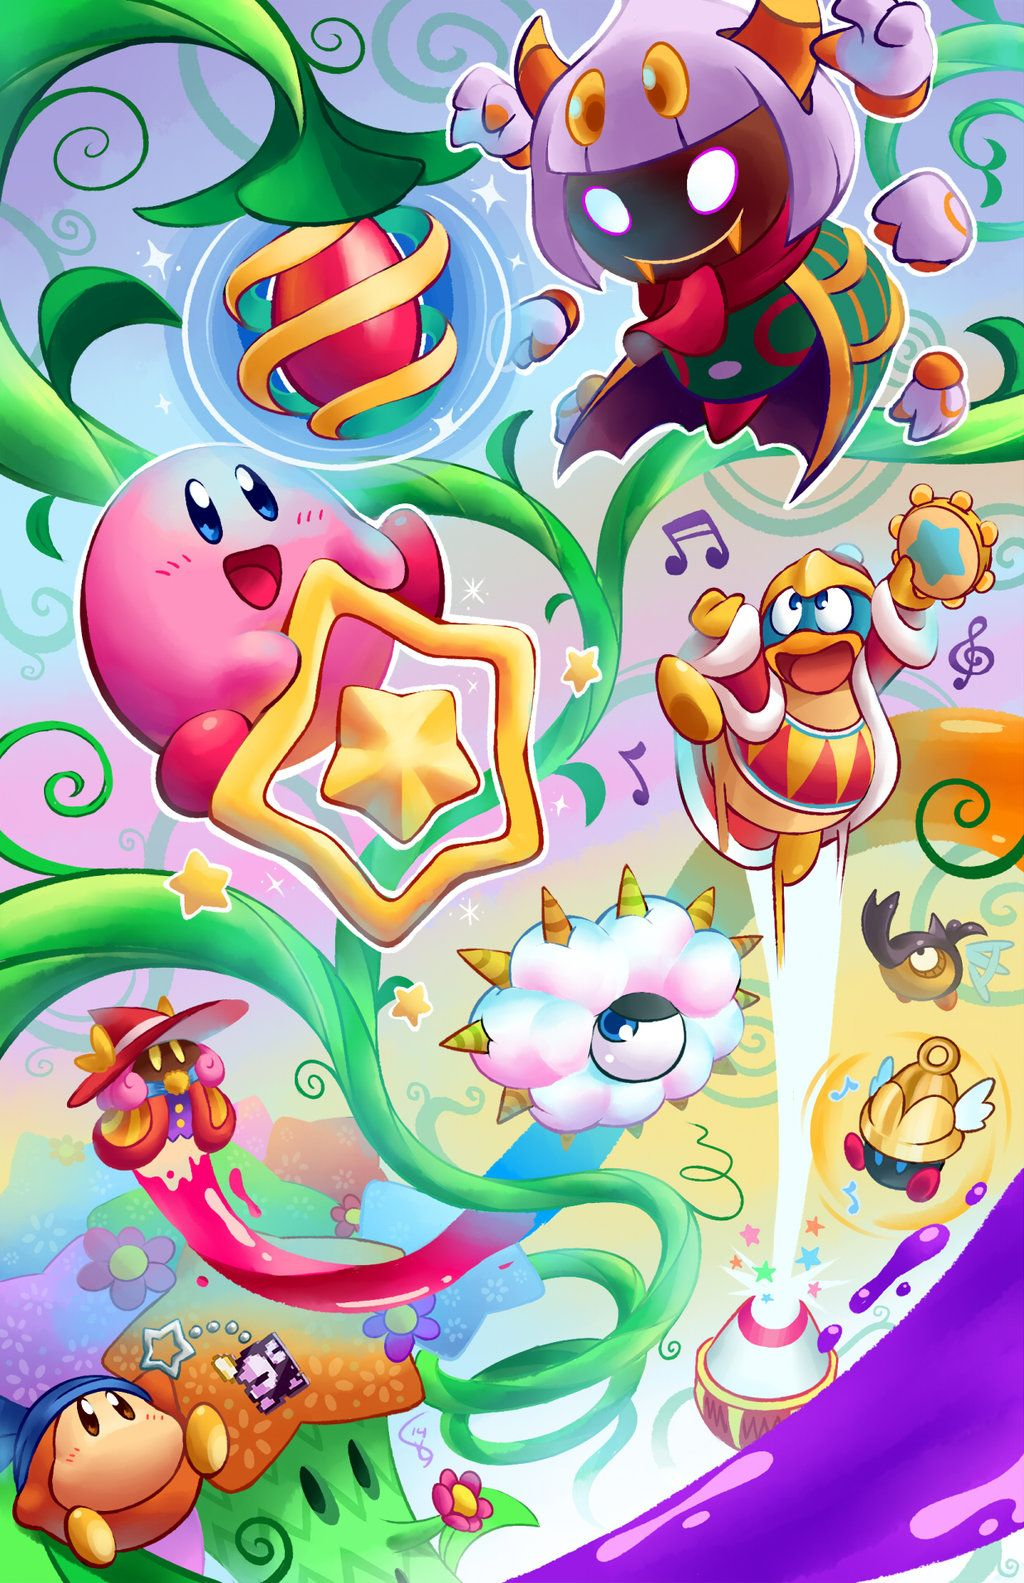 Kirby triple deluxe by torkirbyiantart on deviantart kirby triple deluxe by torkirbyiantart on deviantart voltagebd Image collections